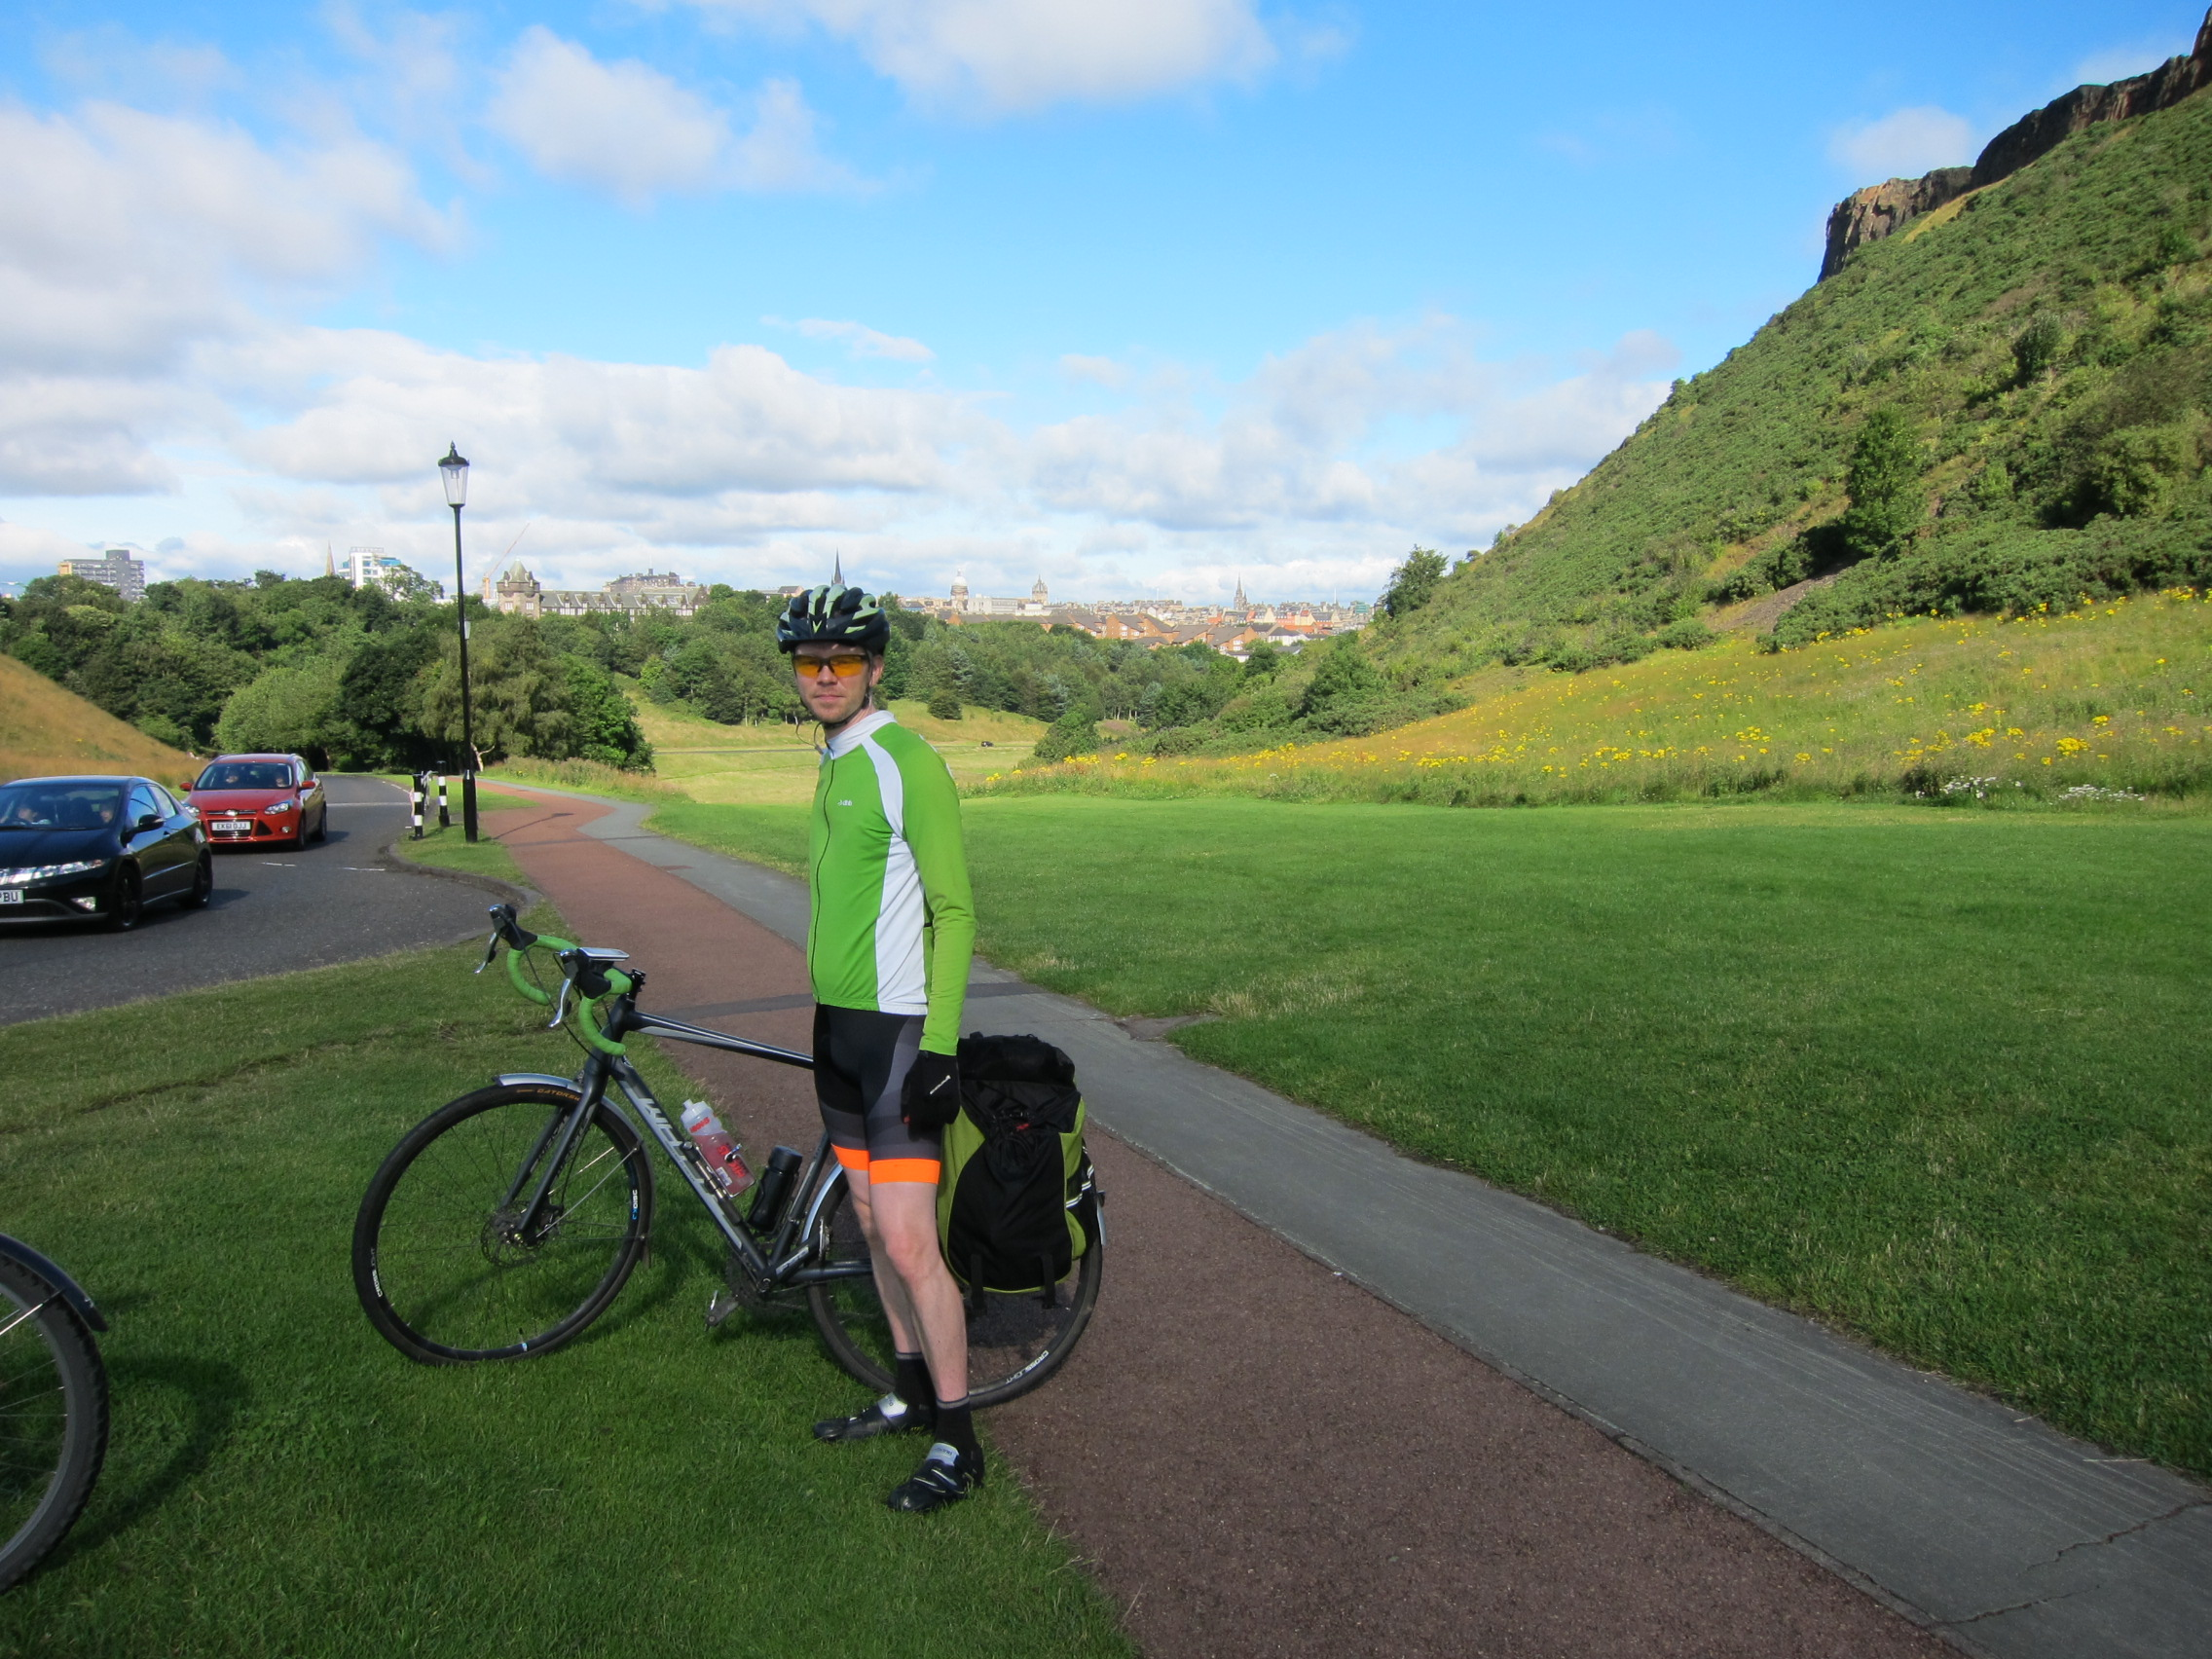 Gareth in cycle gear standing next to his bike in Holyrood Park